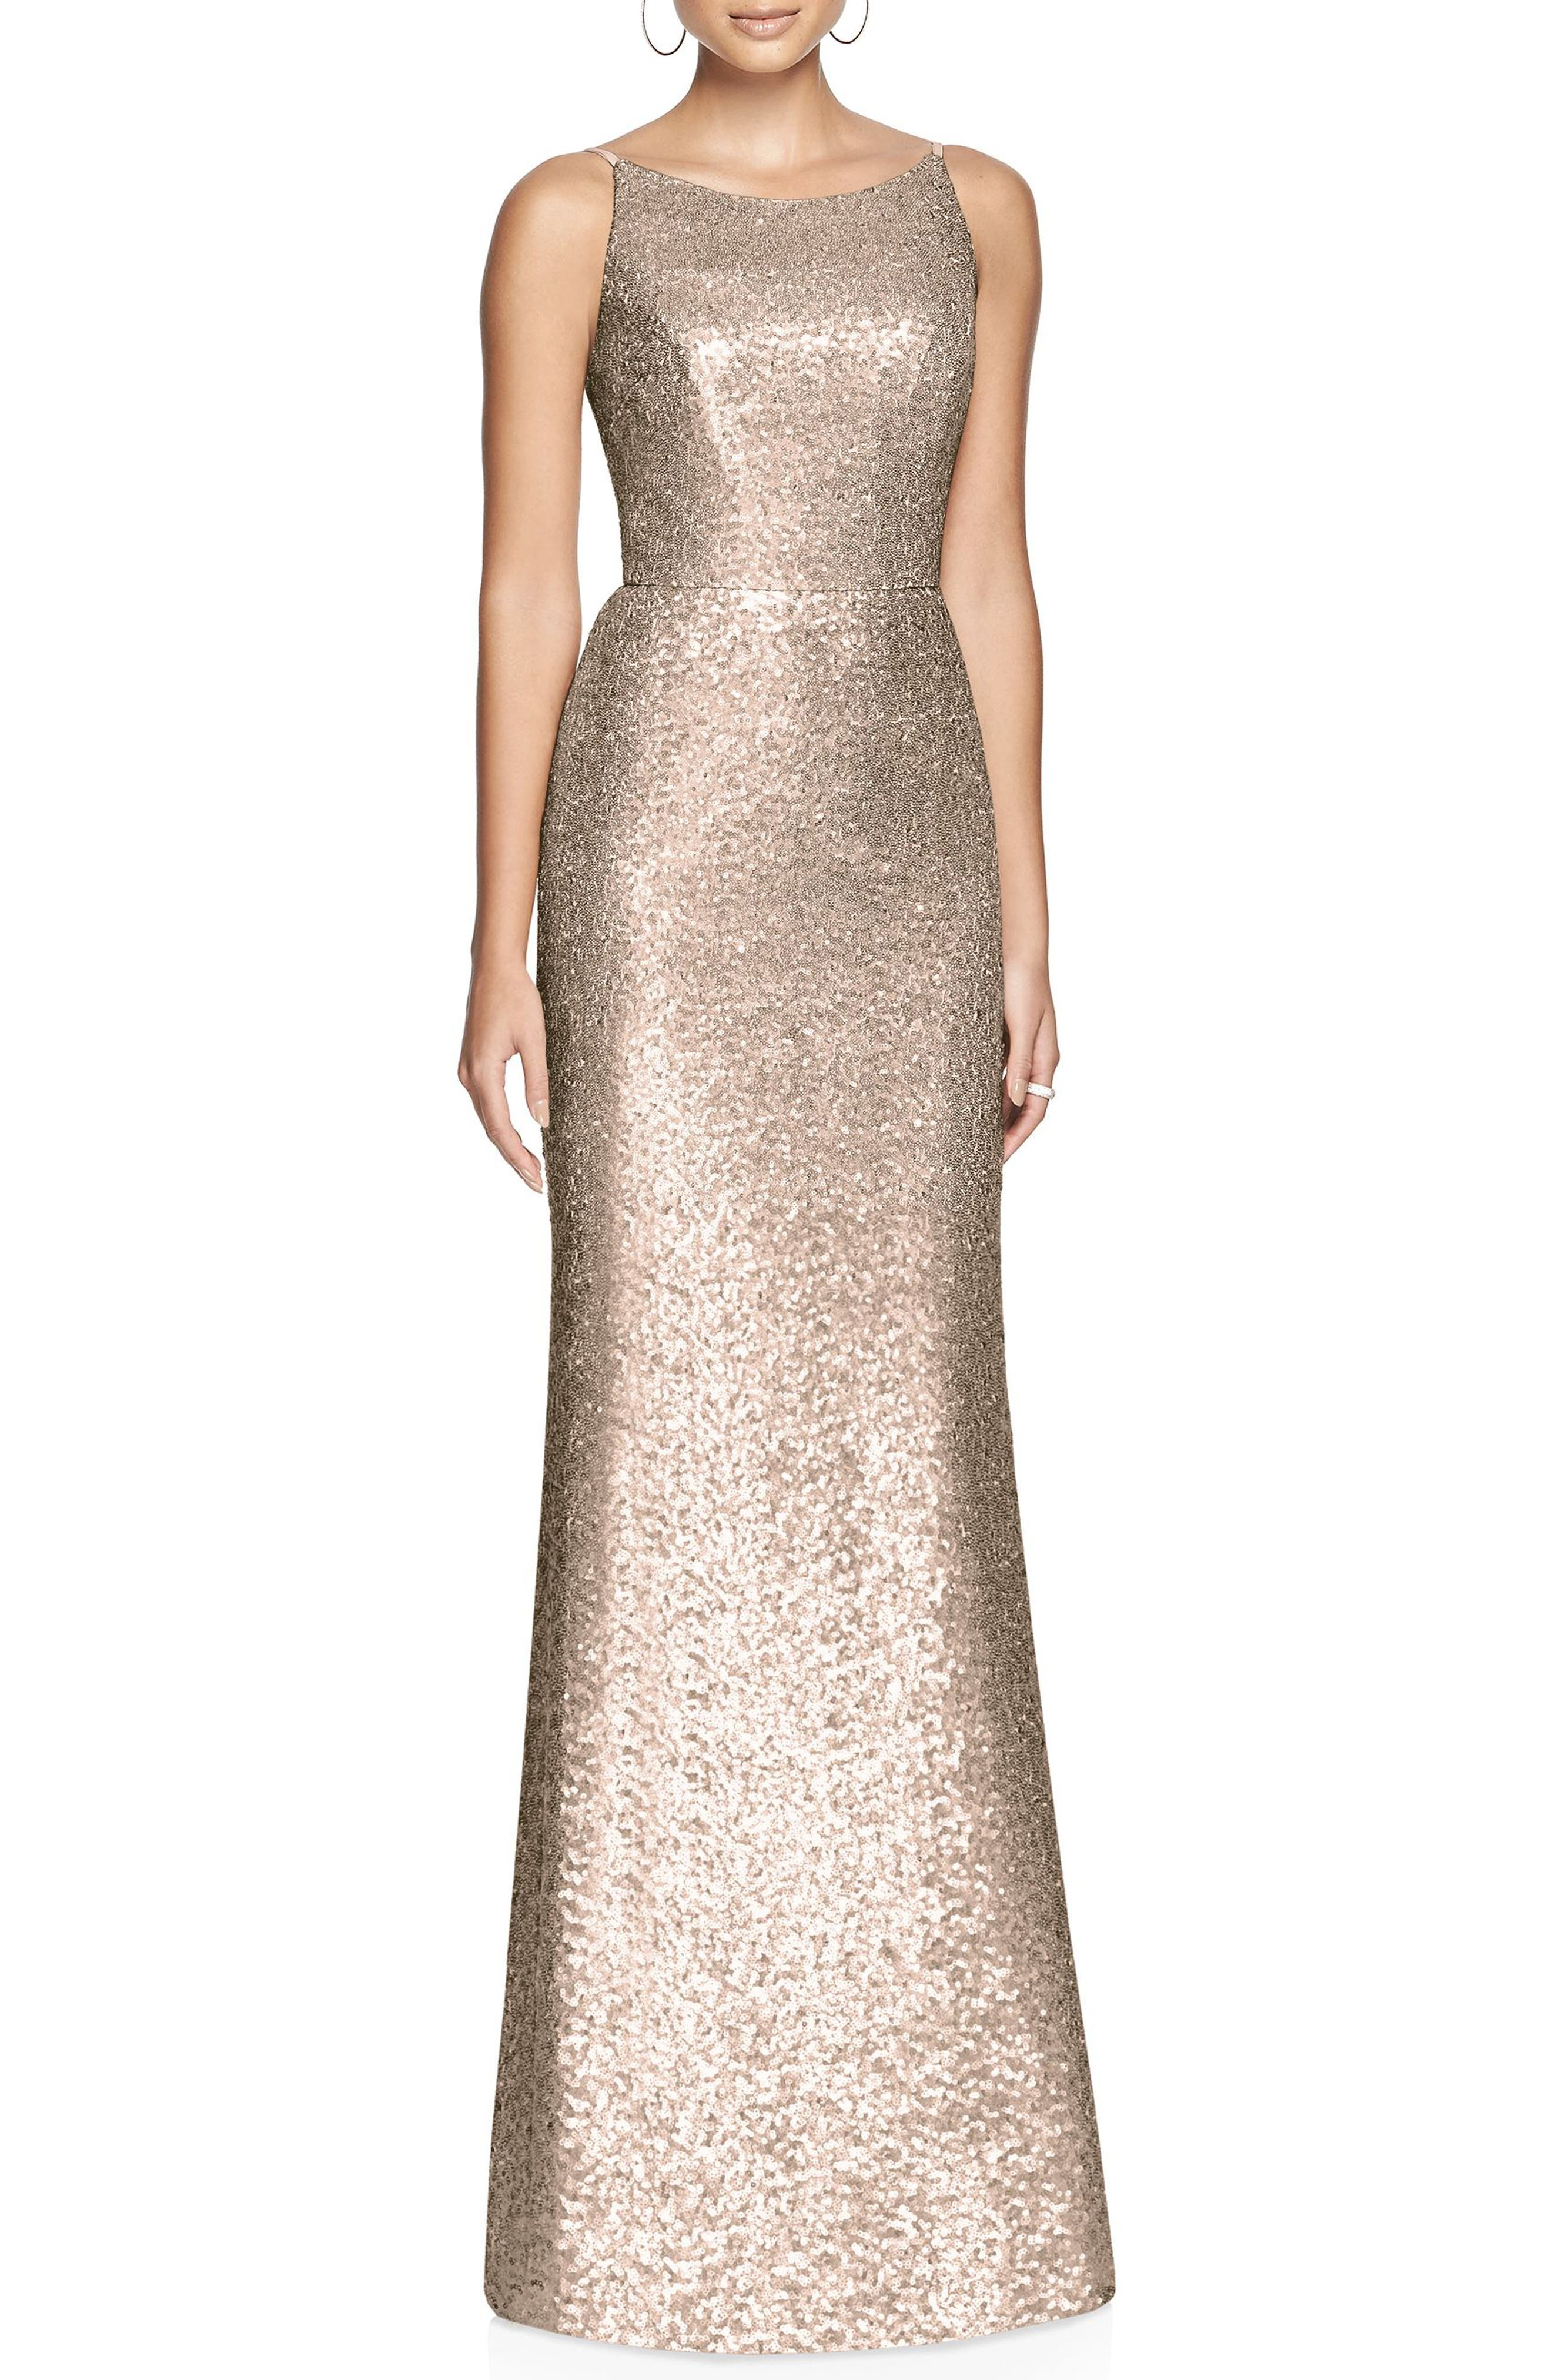 Bateau Neck Sequin Gown,                             Main thumbnail 1, color,                             Rose Gold